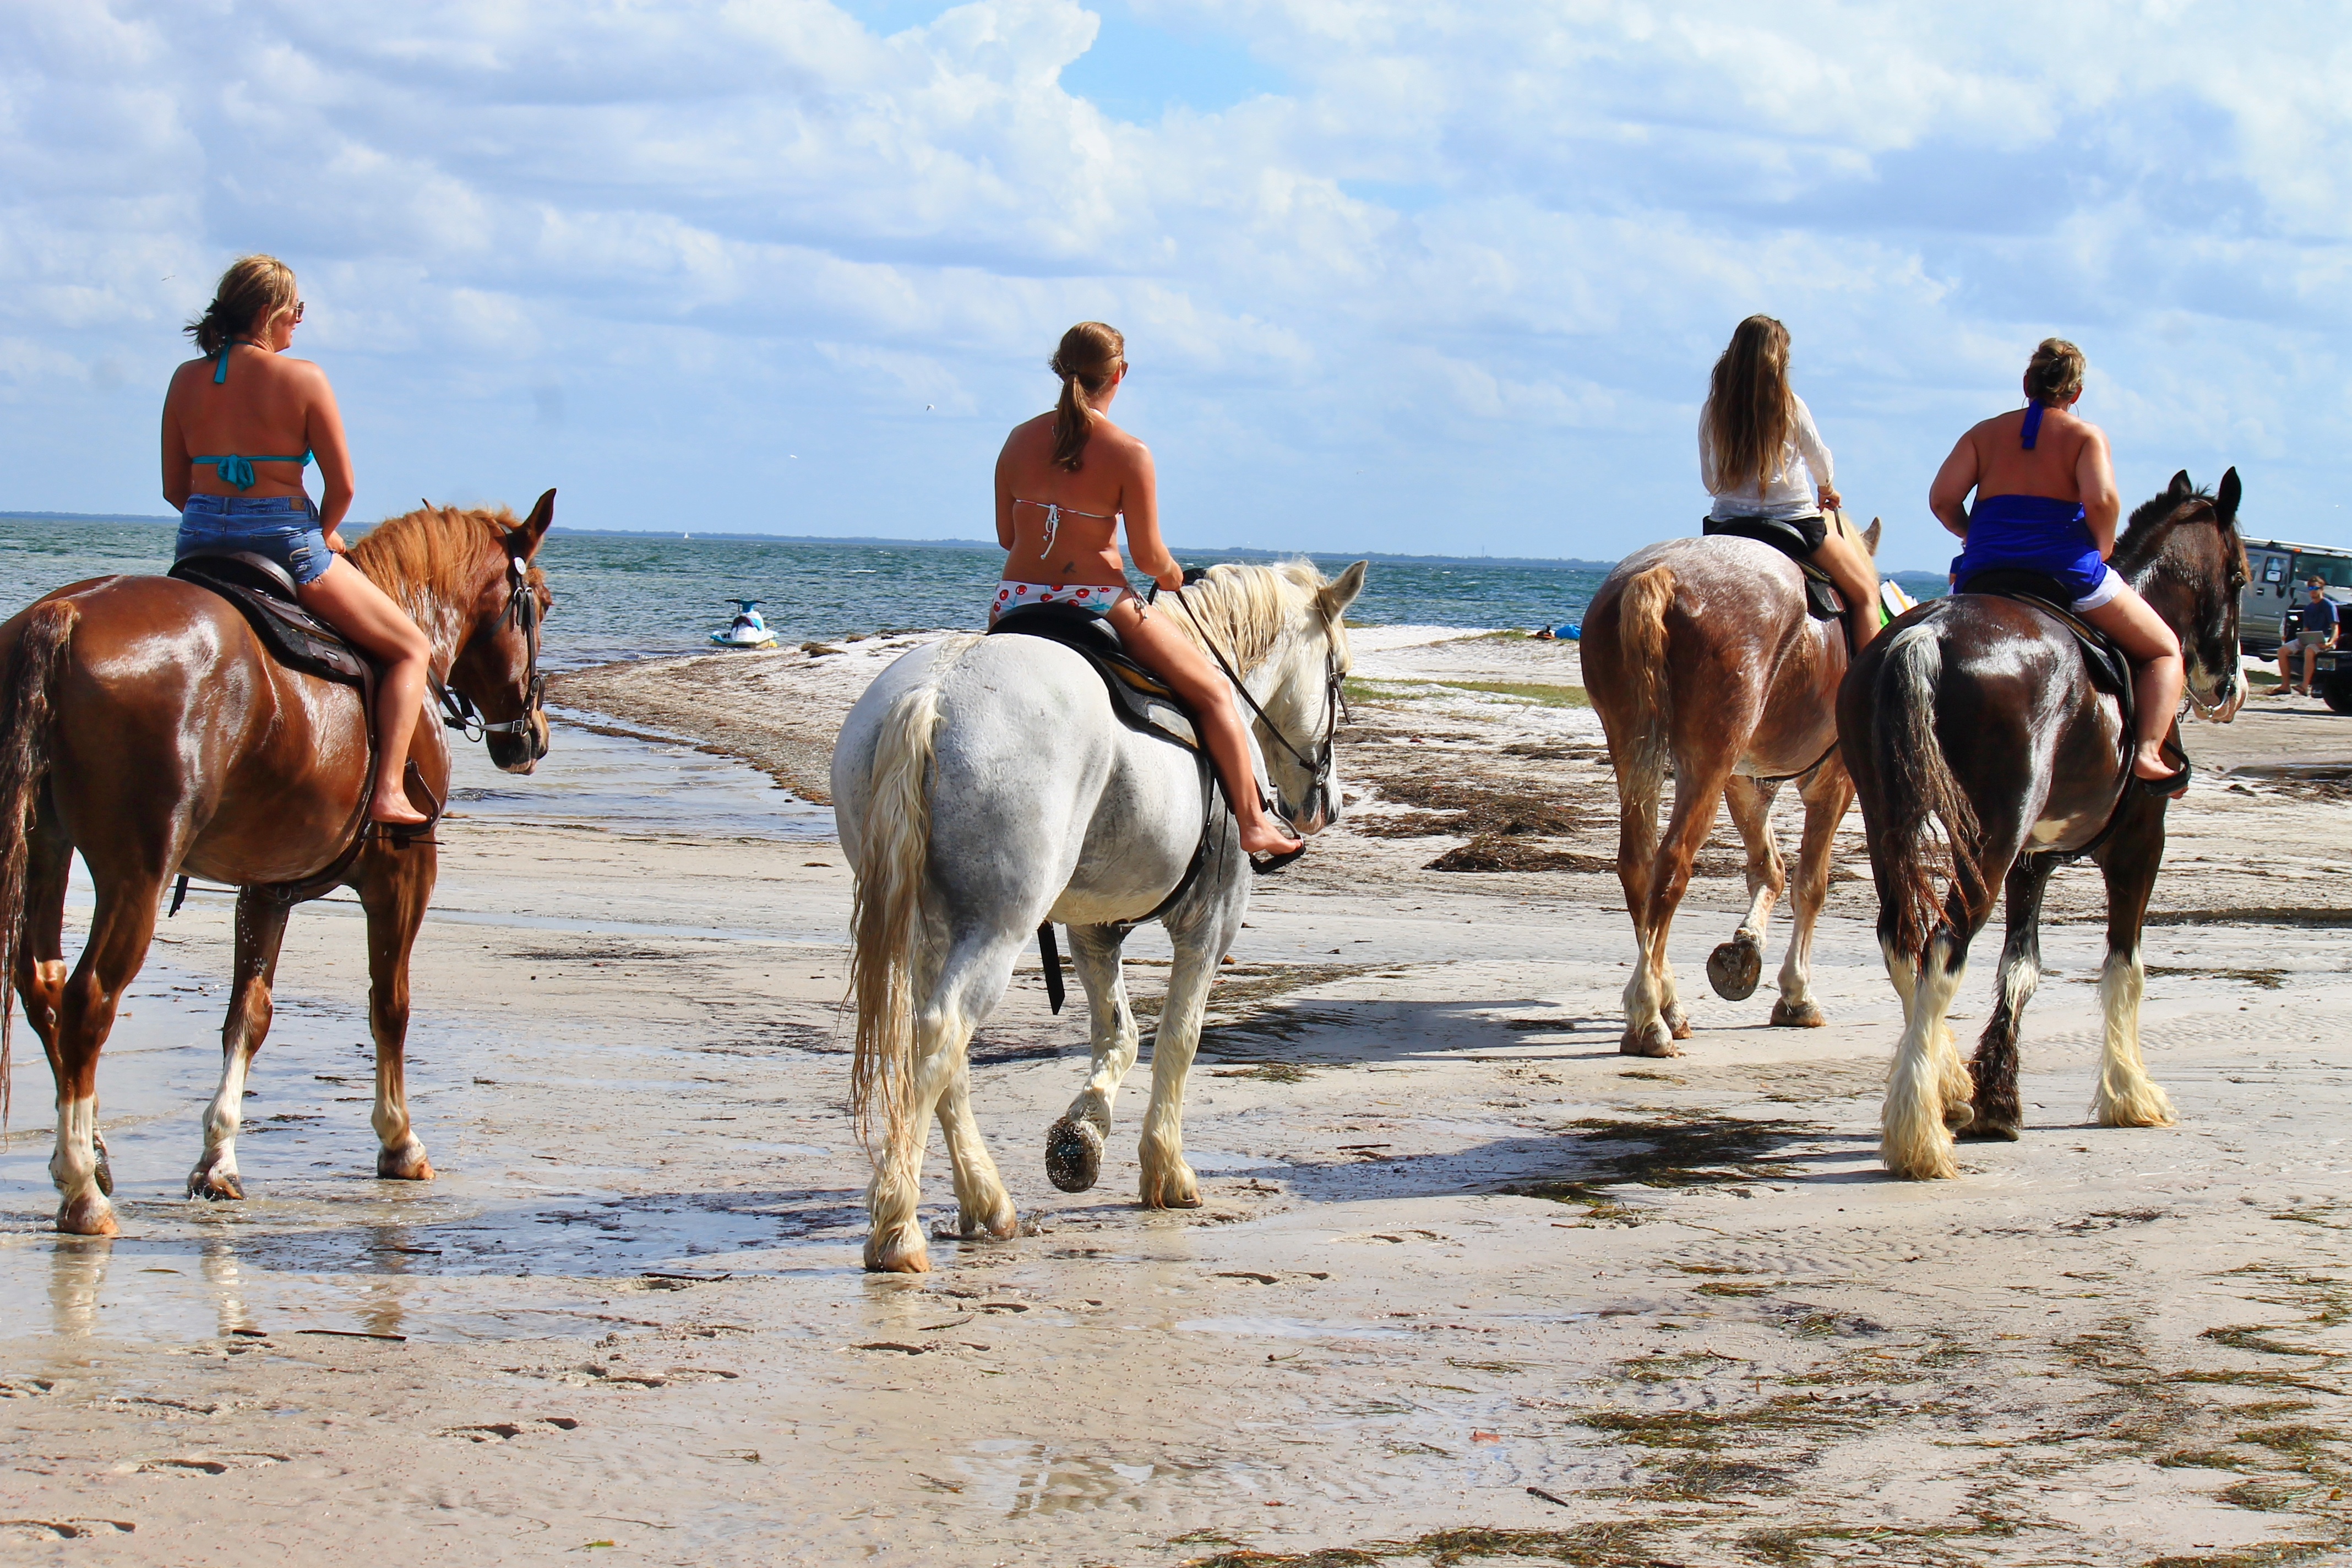 Beach Horseback Riding And Swimming With Horses In Tampa Bay St